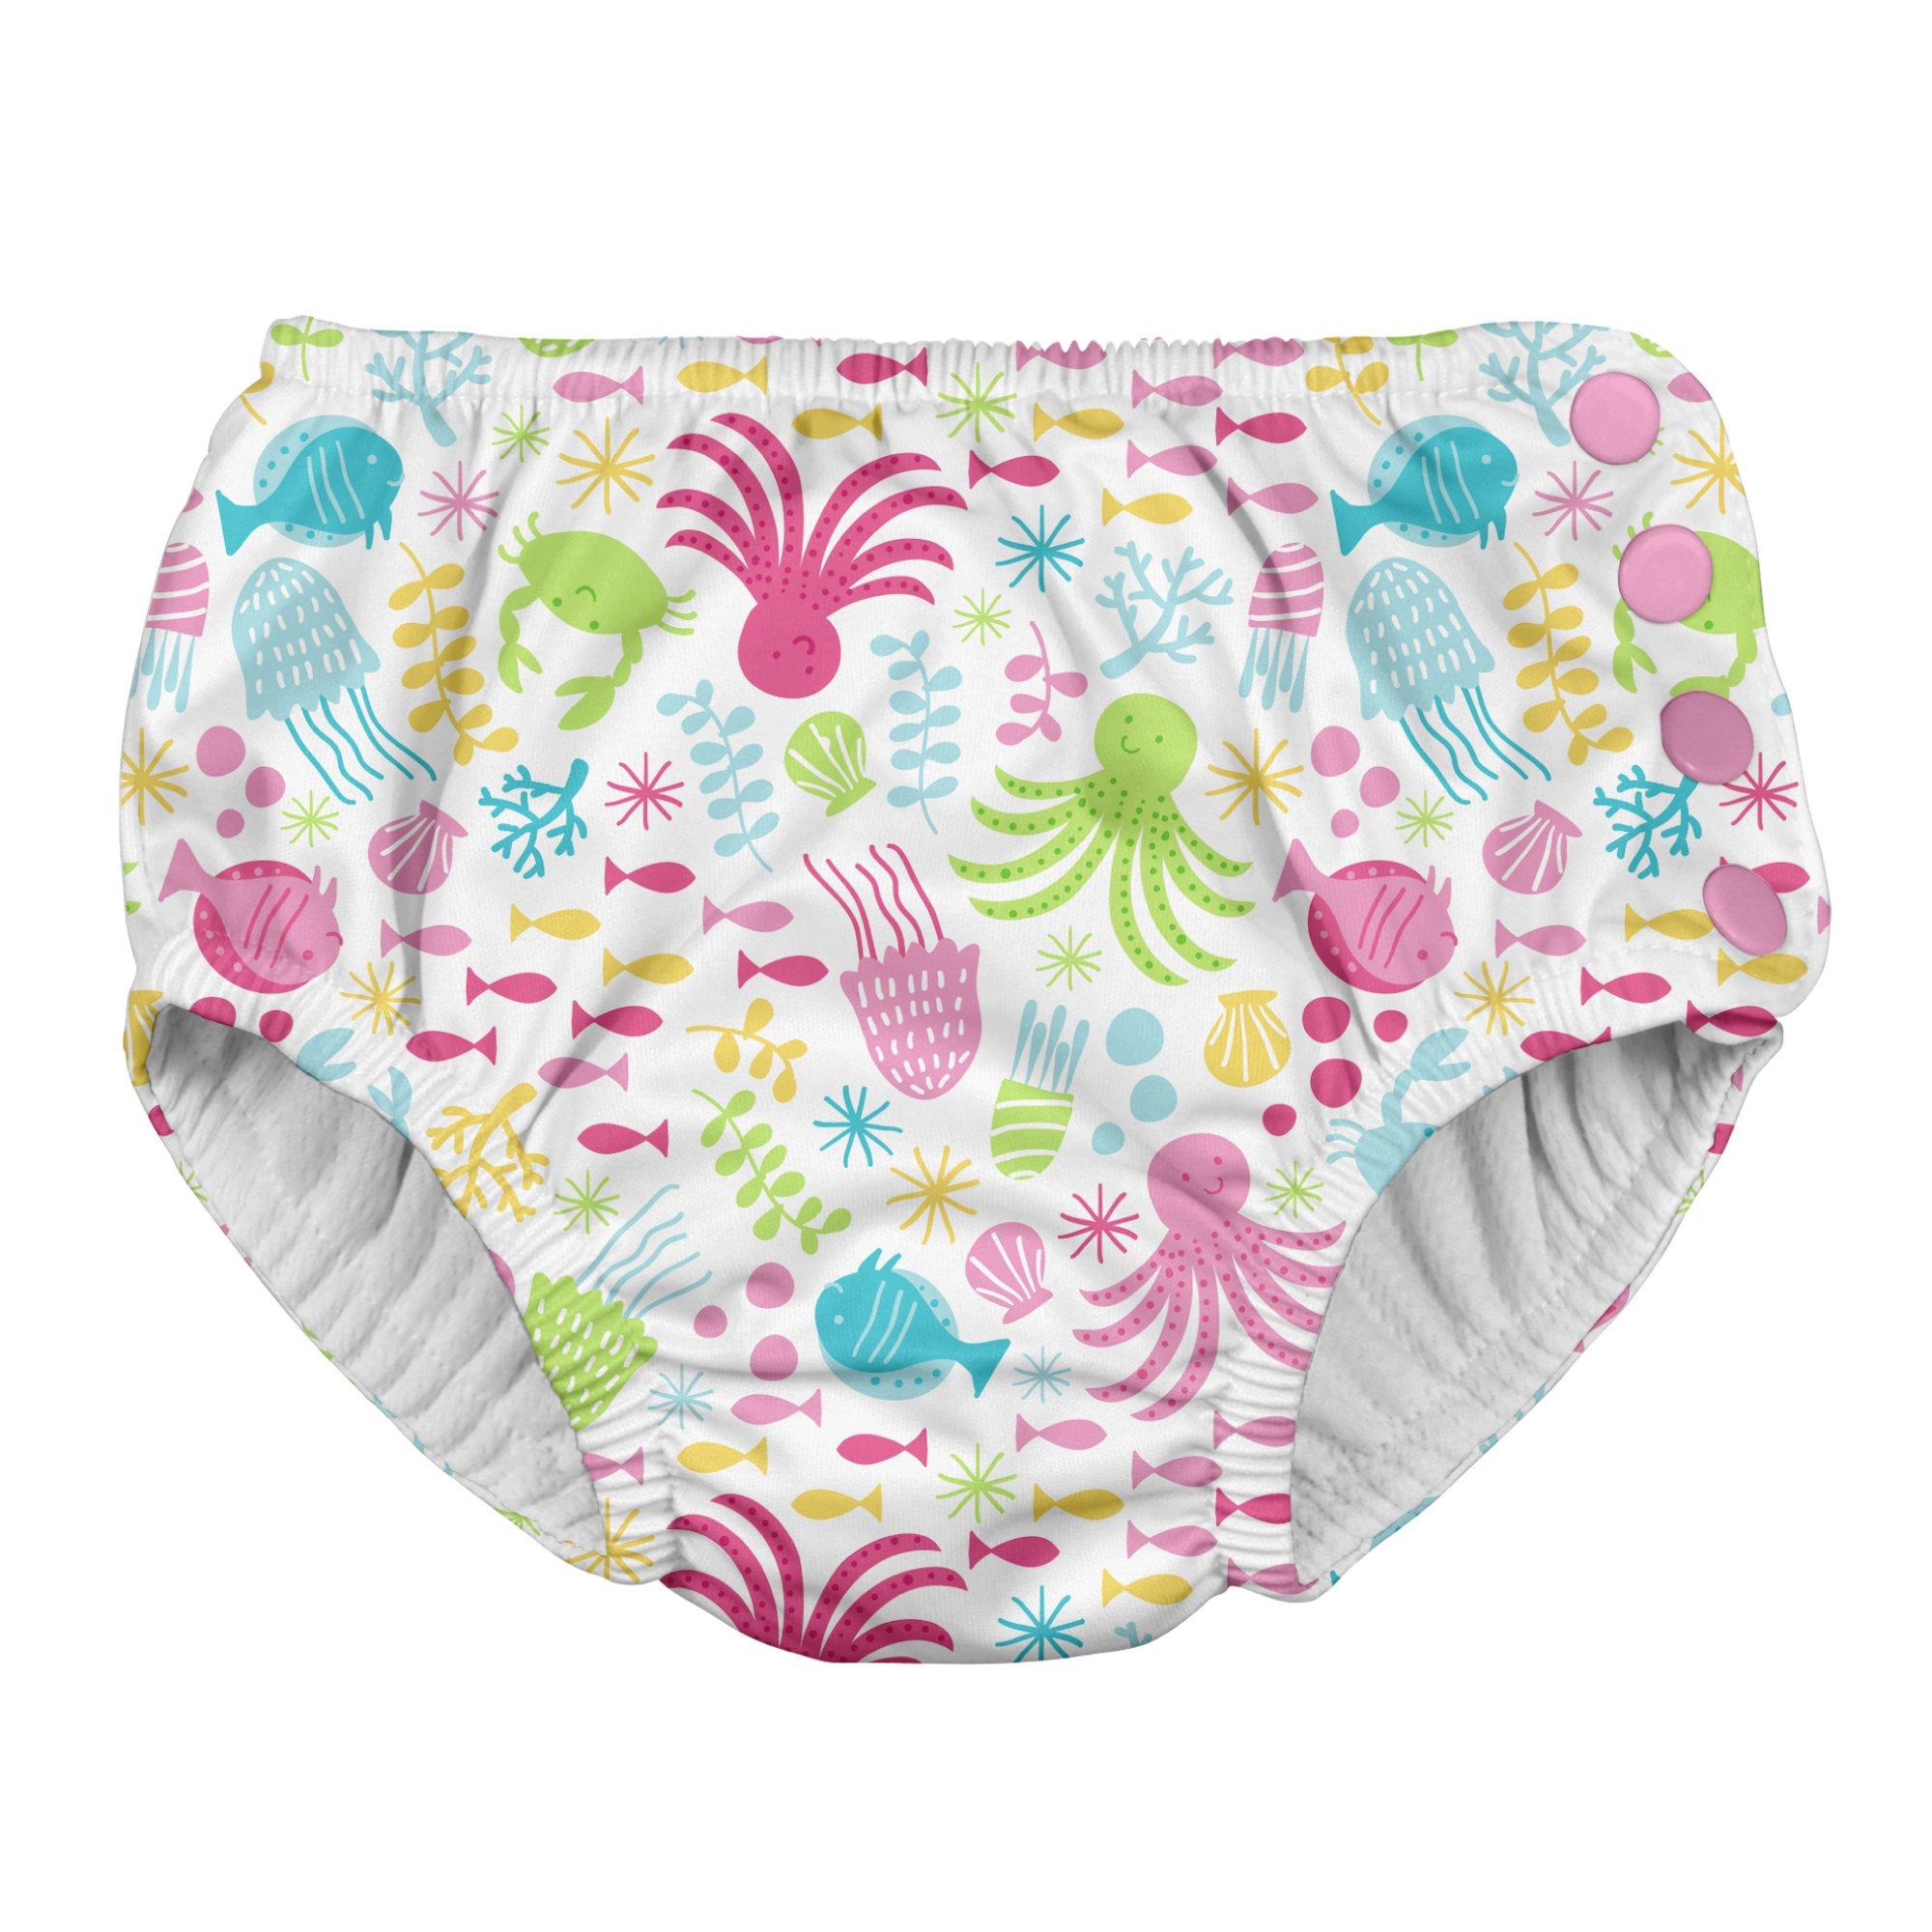 i play. Toddler Girls' Snap Reusable Absorbent Swimsuit Diaper, White Sea Pals, 3T